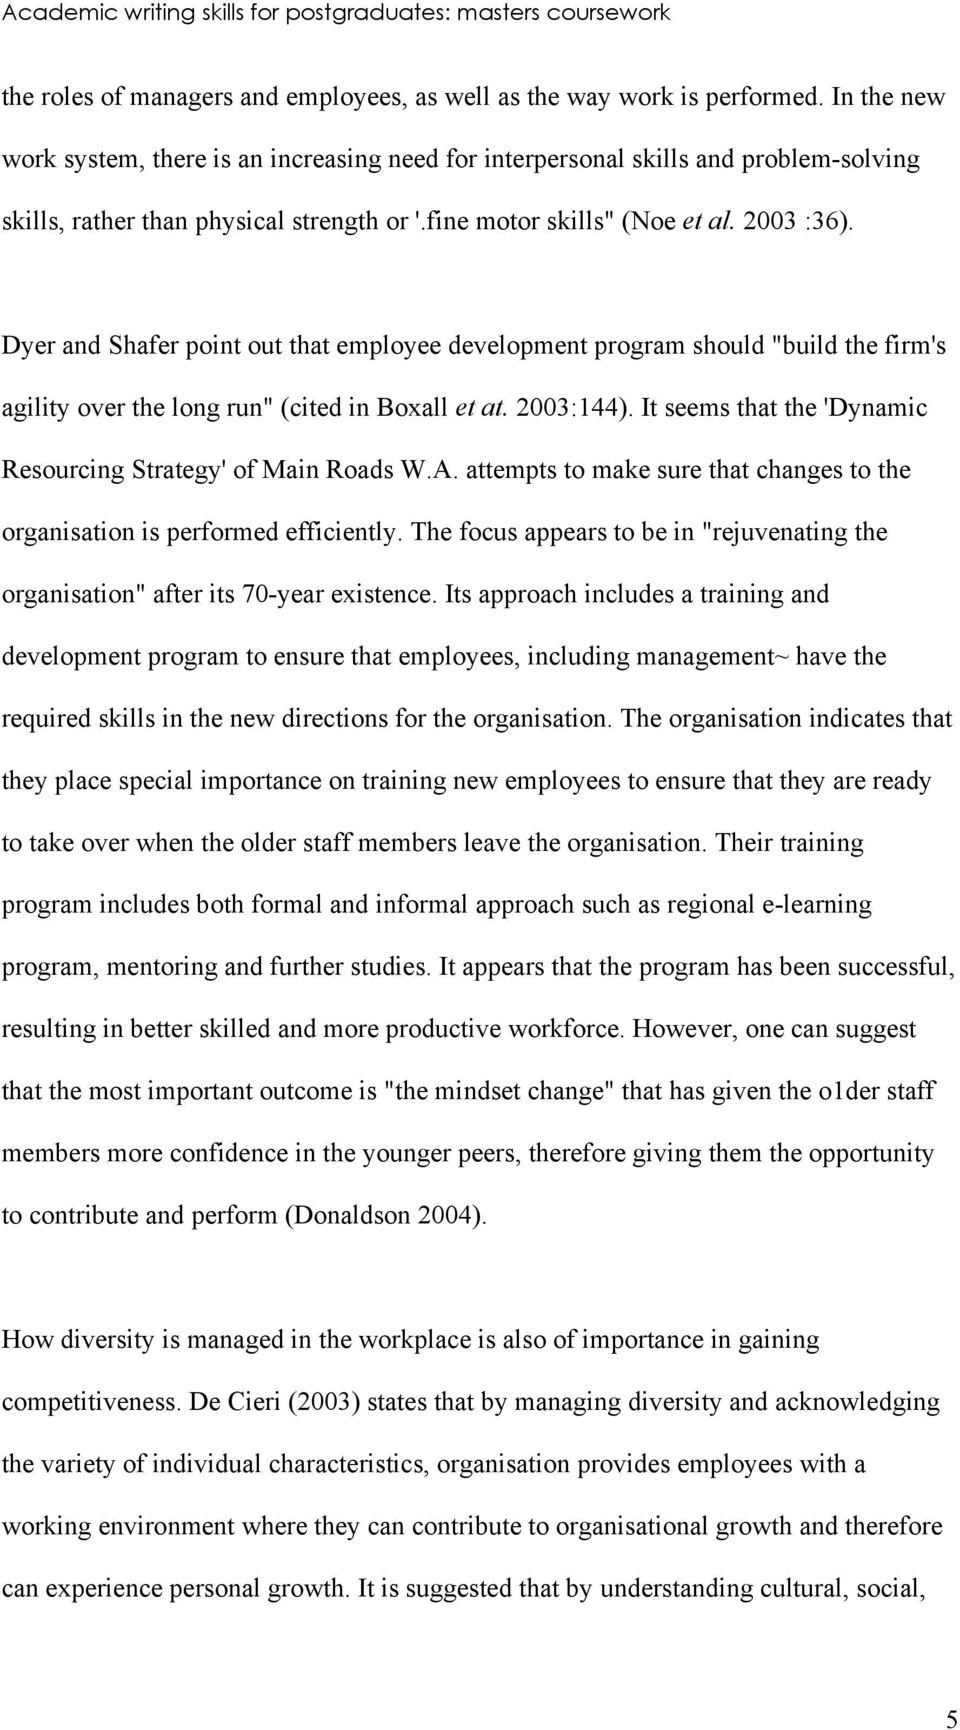 "Dyer and Shafer point out that employee development program should ""build the firm's agility over the long run"" (cited in Boxall et at. 2003:144)."